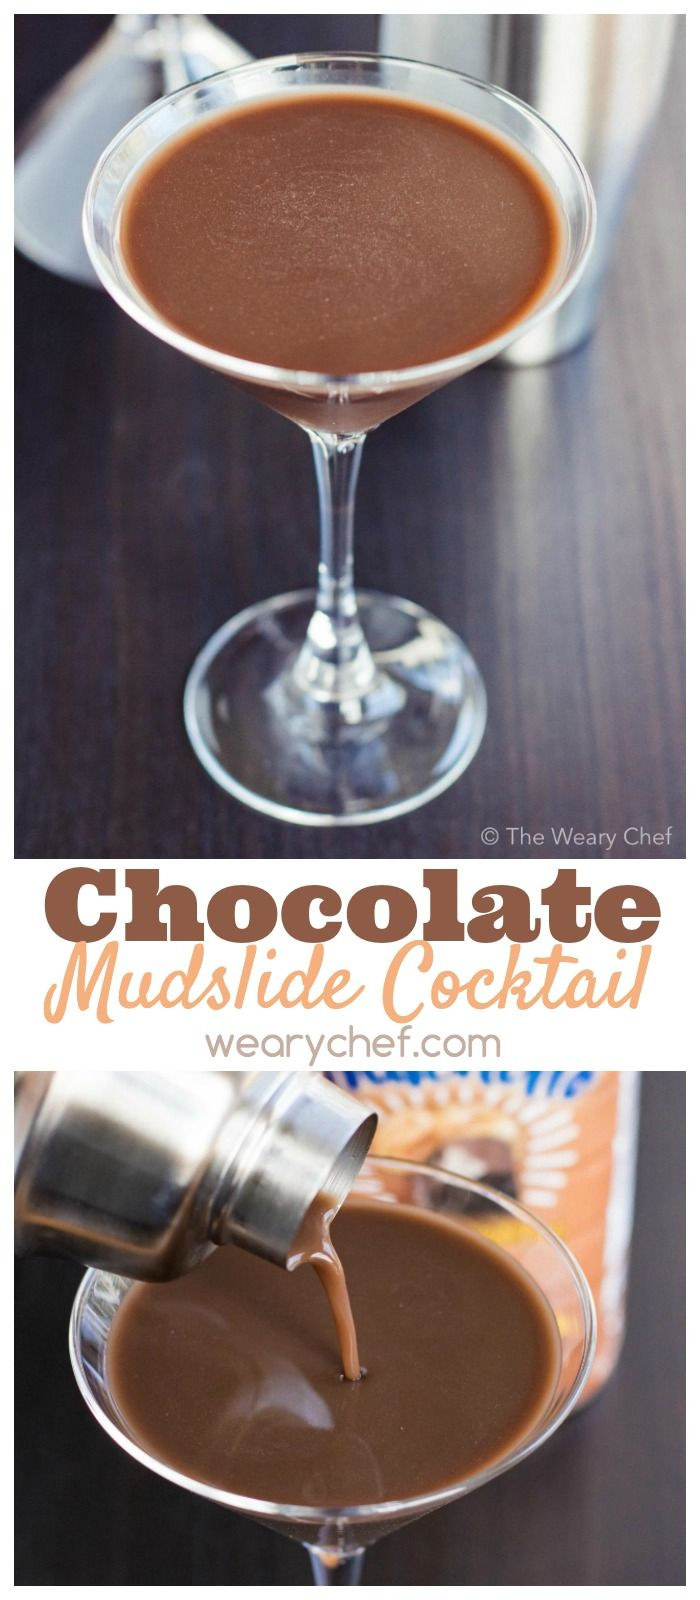 Chocolate Mudslide Cocktail